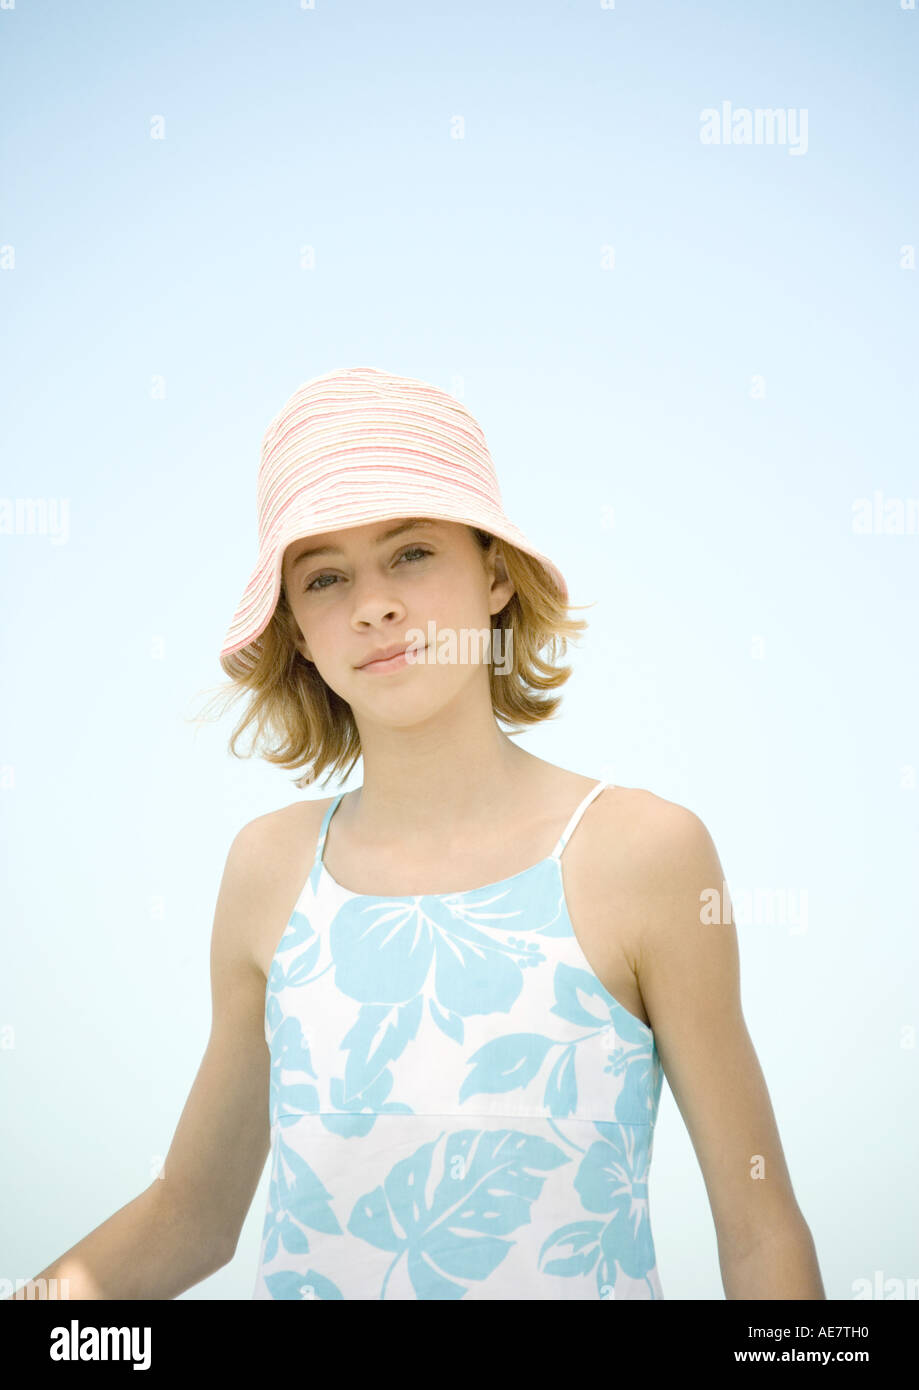 Preteen girl wearing sun hat, portrait - Stock Image